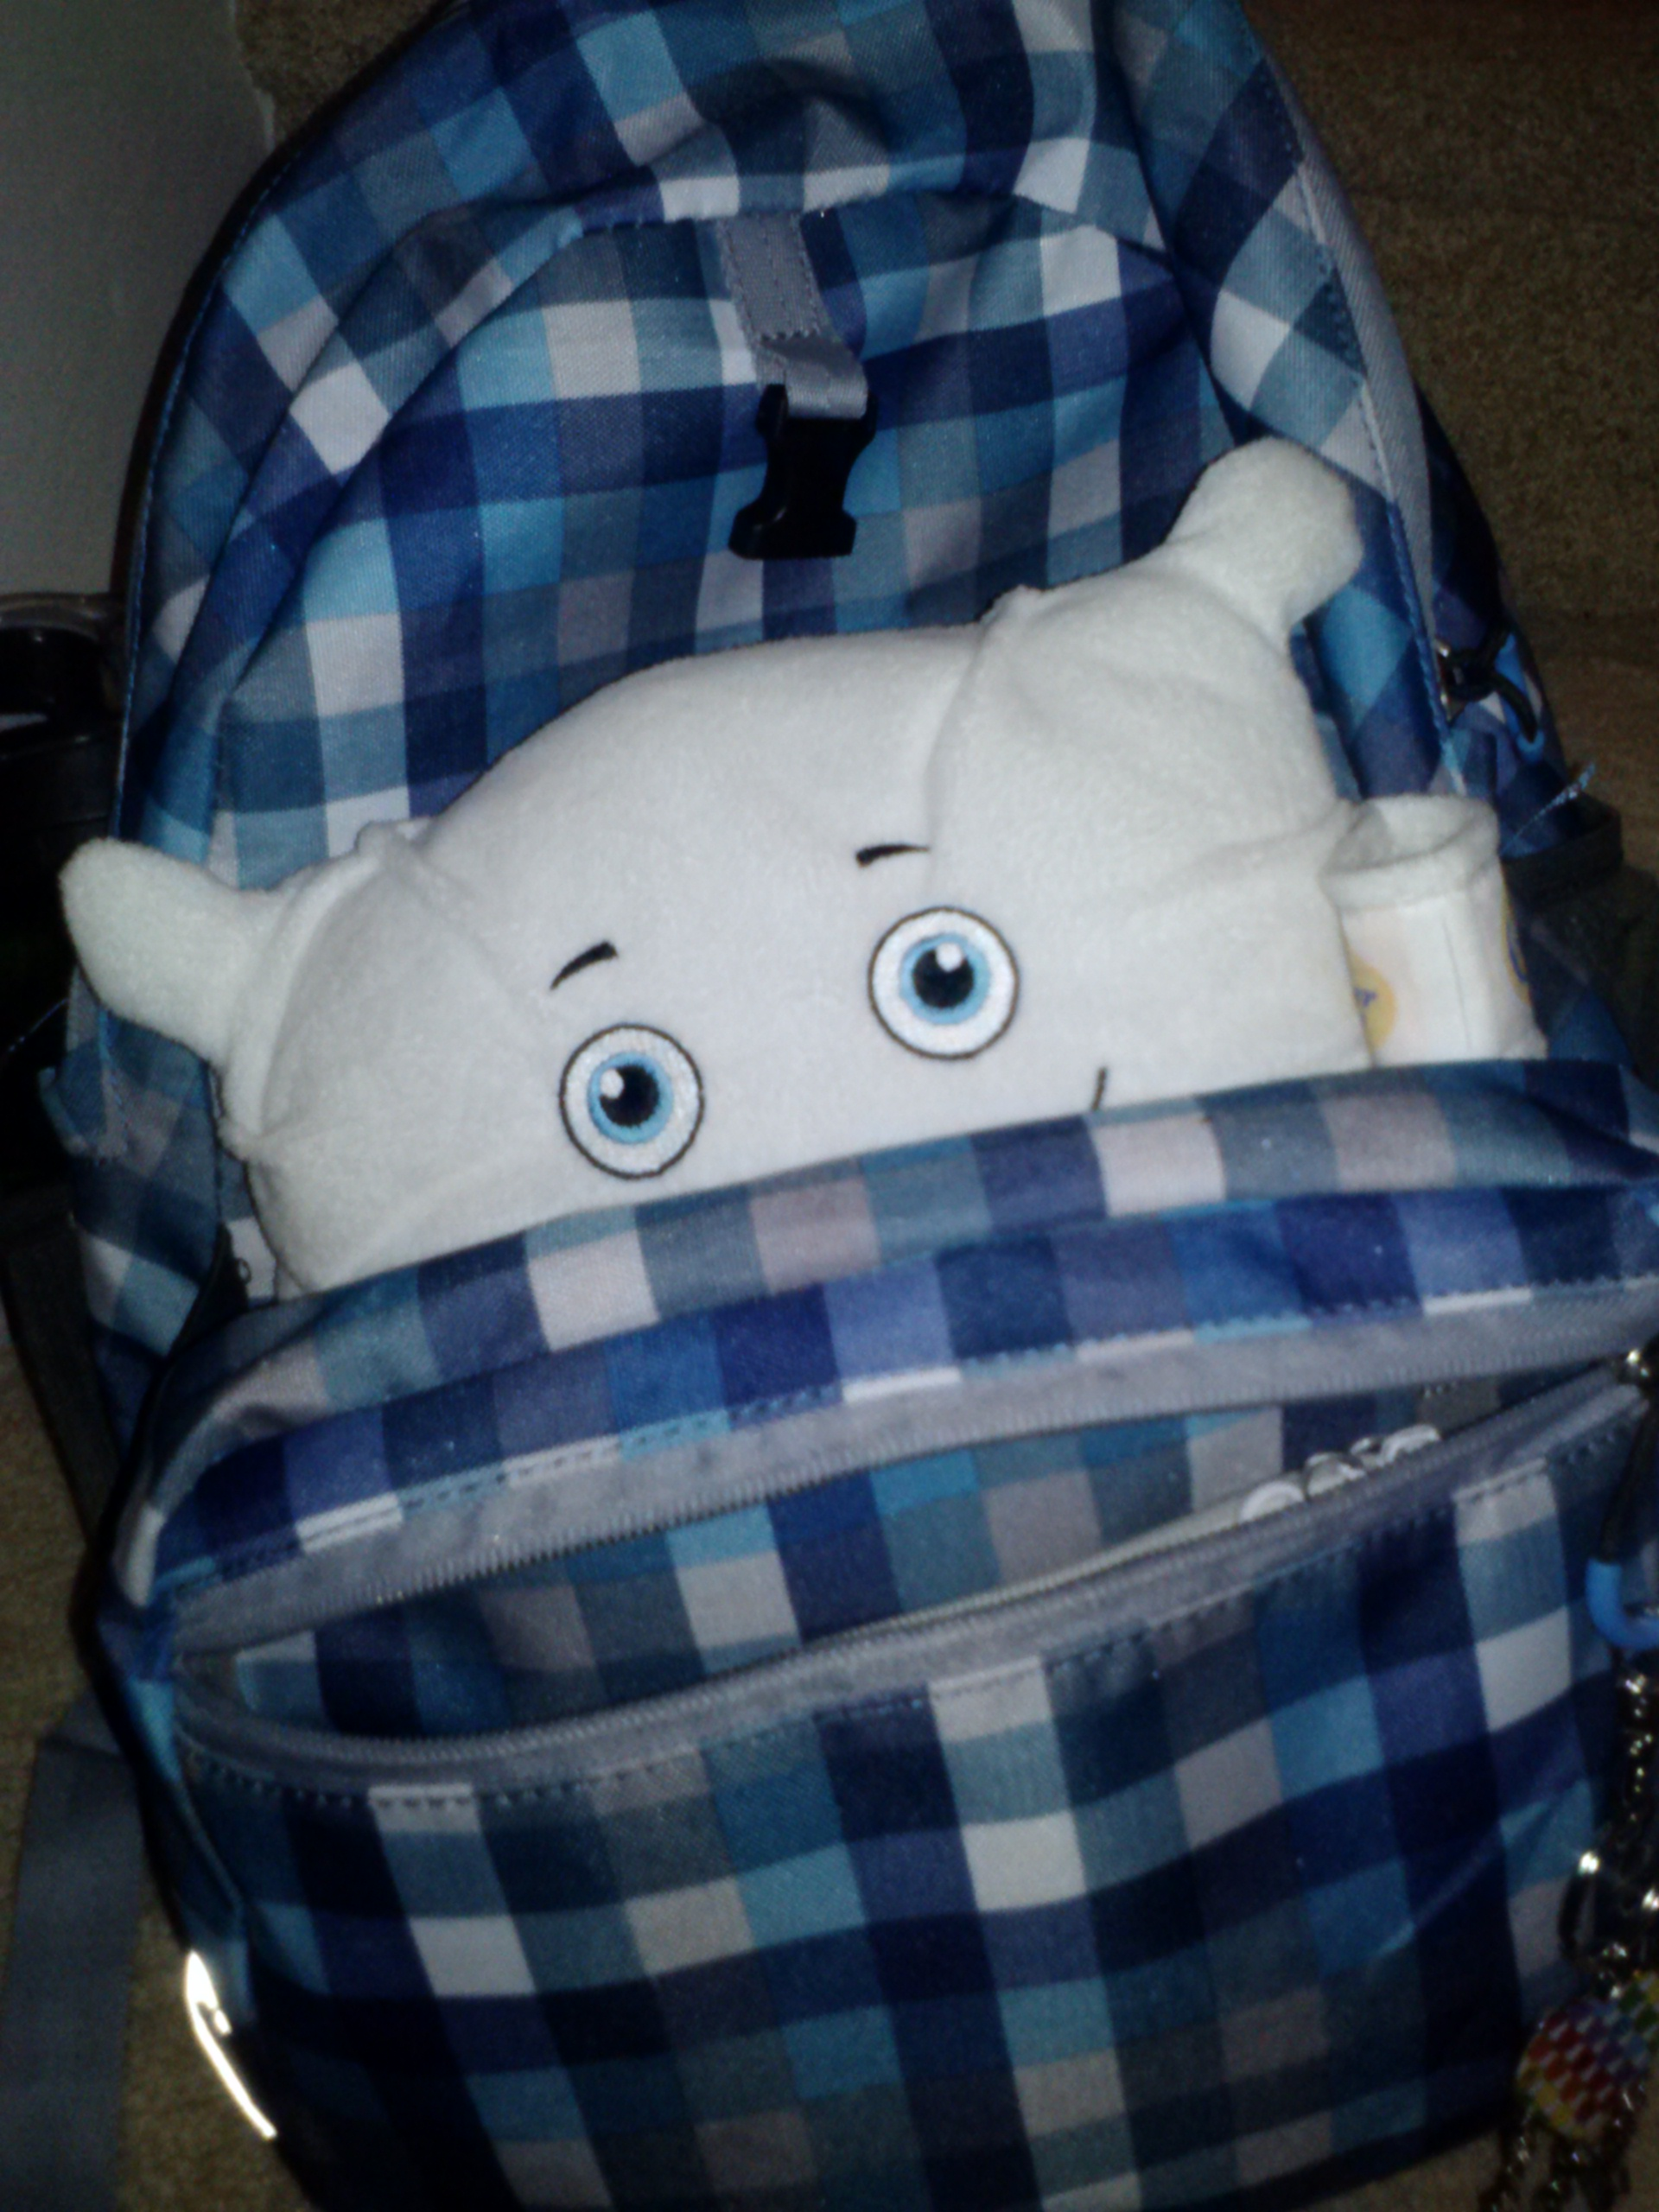 Do you think anyone would notice me tagging along to school in this backpack?